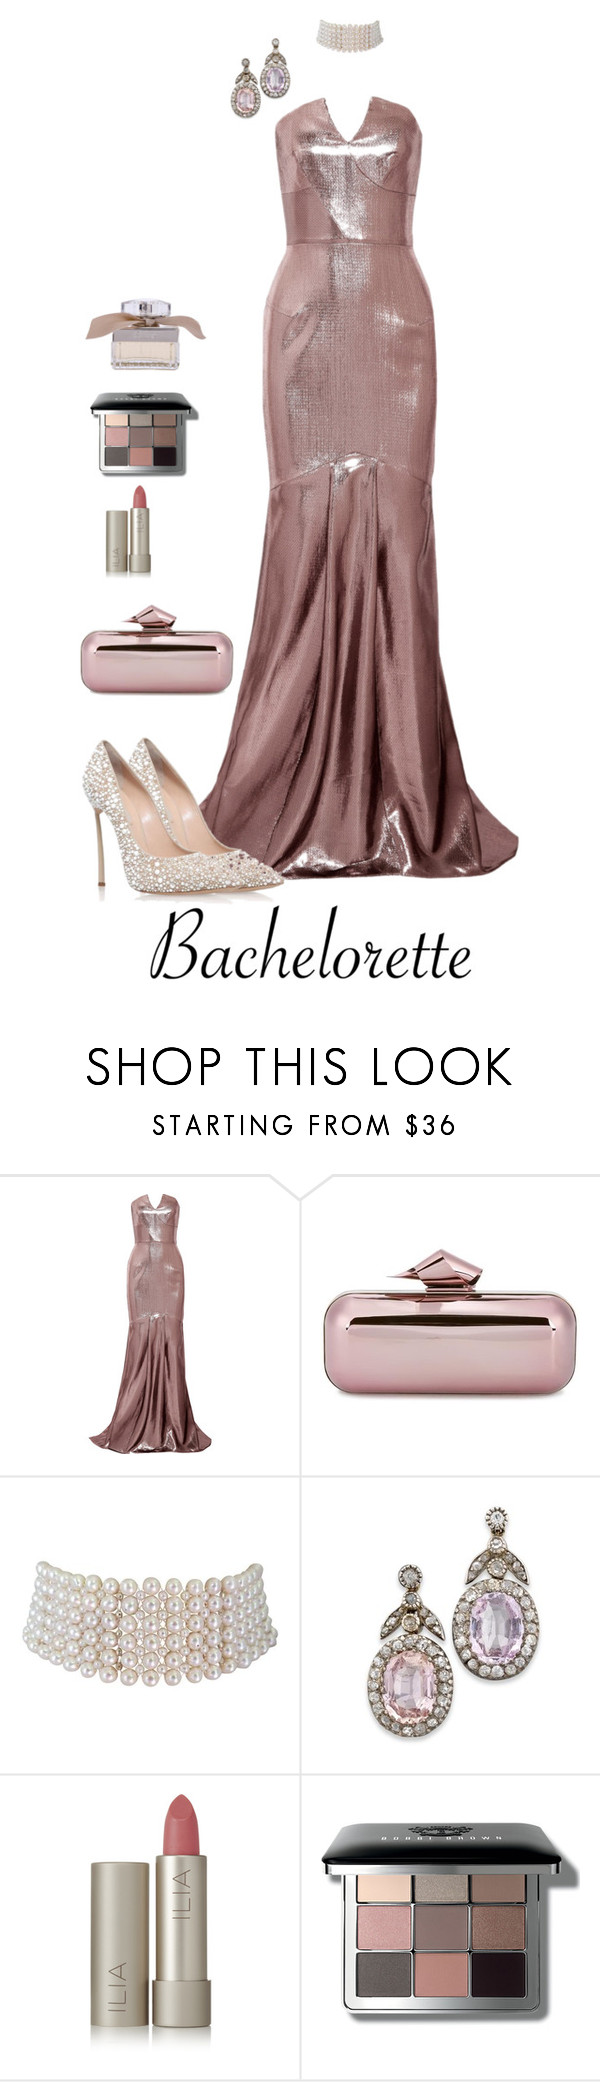 """Untitled #4706"" by barones-tania ❤ liked on Polyvore featuring Roland Mouret, Casadei, Jimmy Choo, Marina J., Ilia, Bobbi Brown Cosmetics and Chloé"